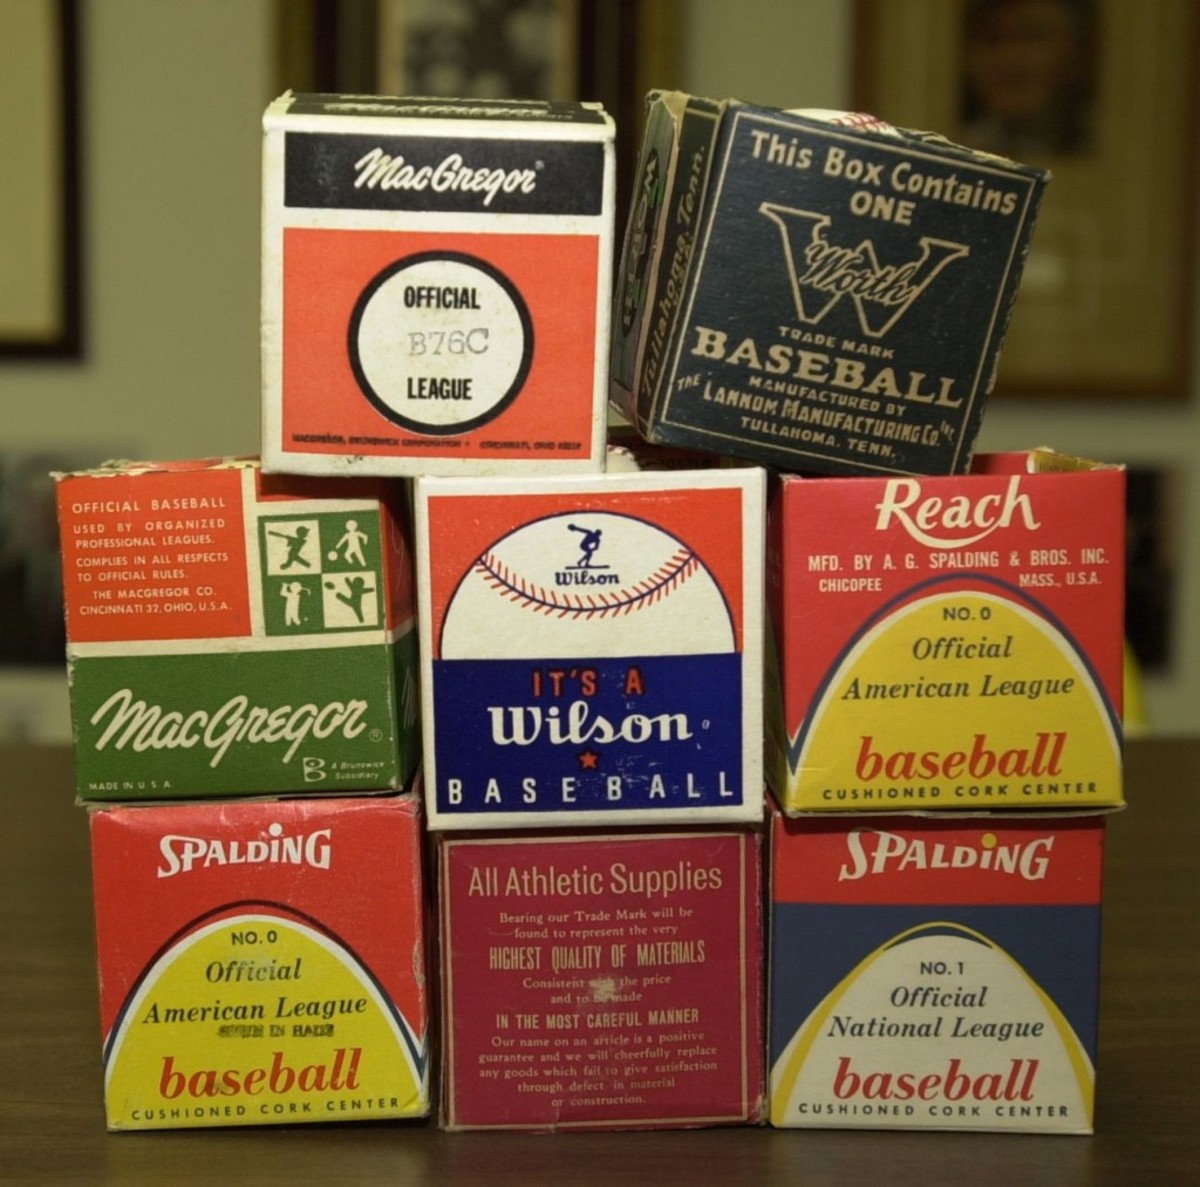 Balls with fake signatures and fake stamps were placed into fake vintage boxes, created by the forger.